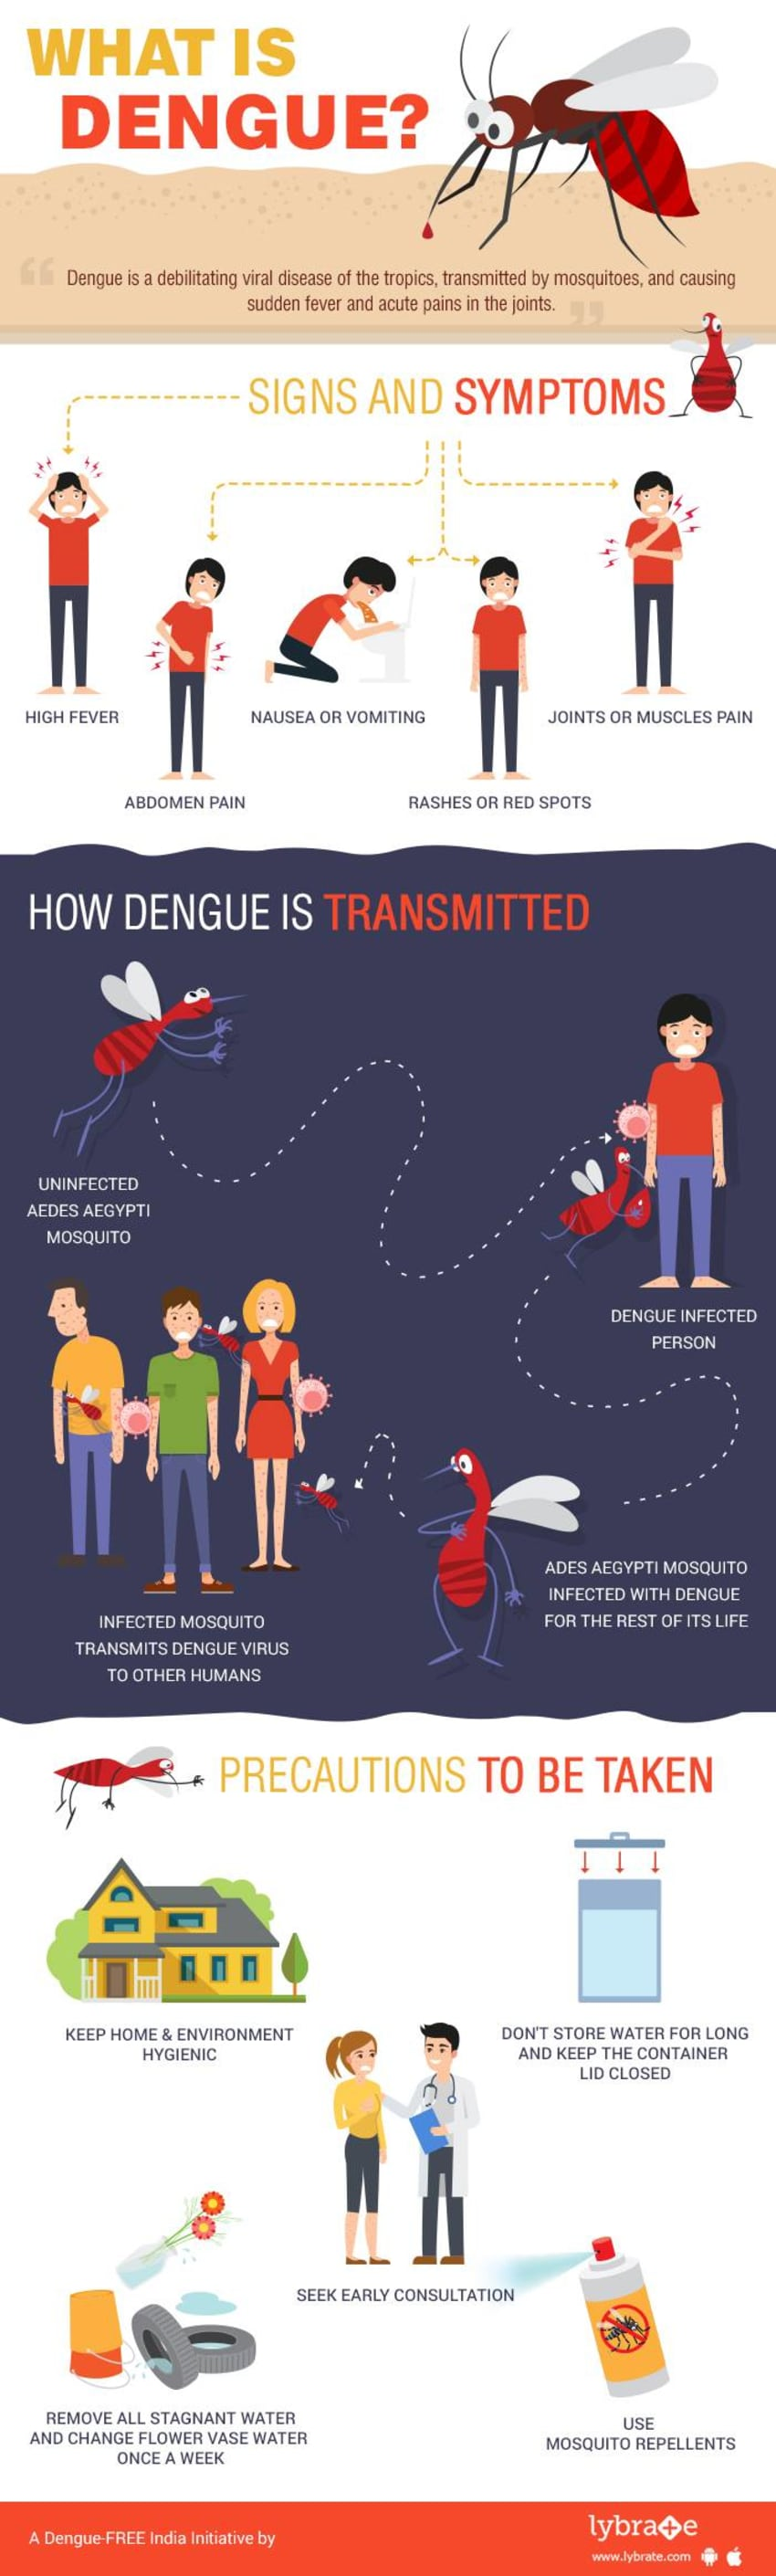 Ayurvedic treatment For Dengue Fever - By Dr  Shashank